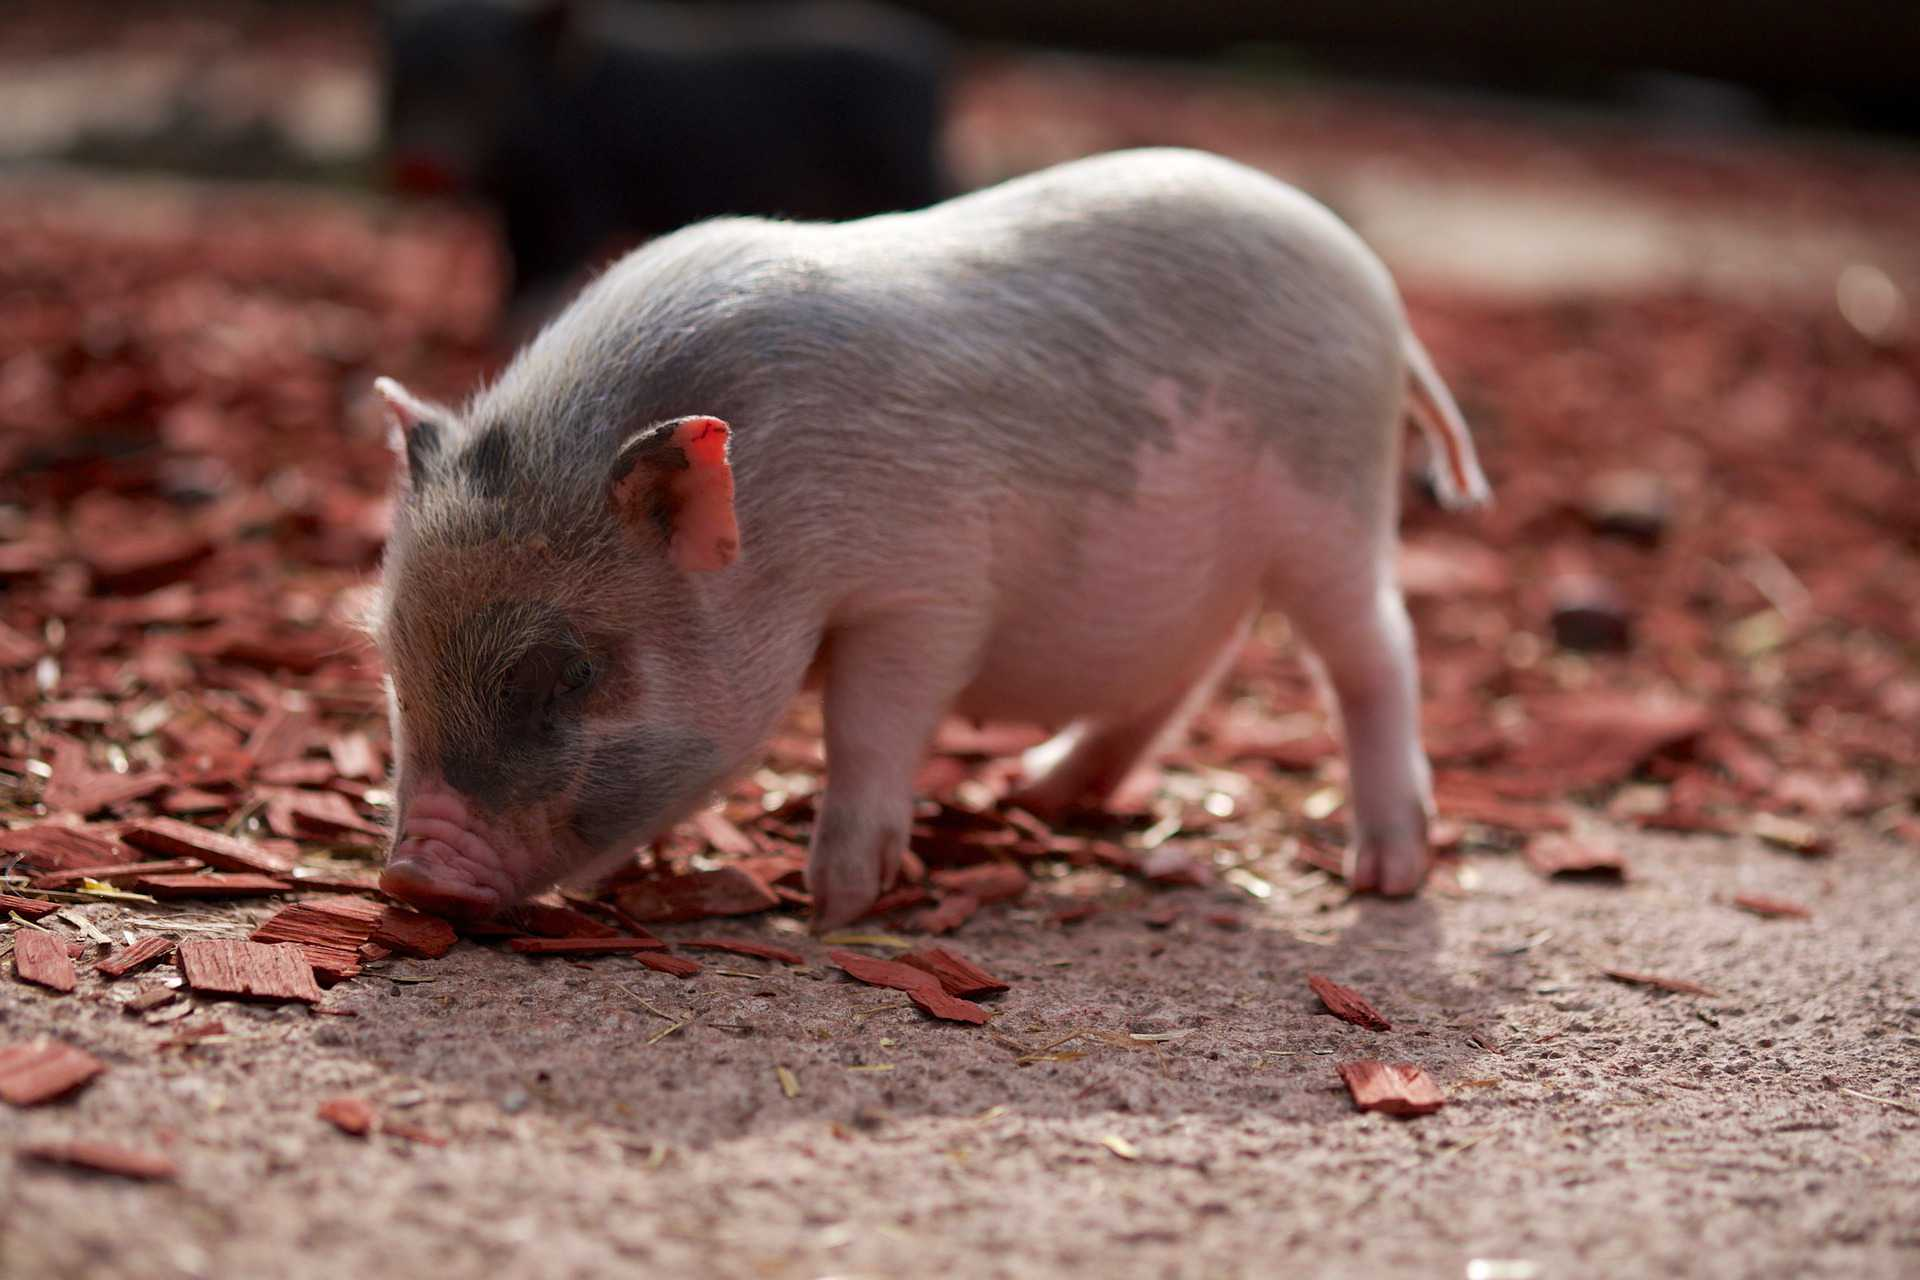 A side-view of a piglet.